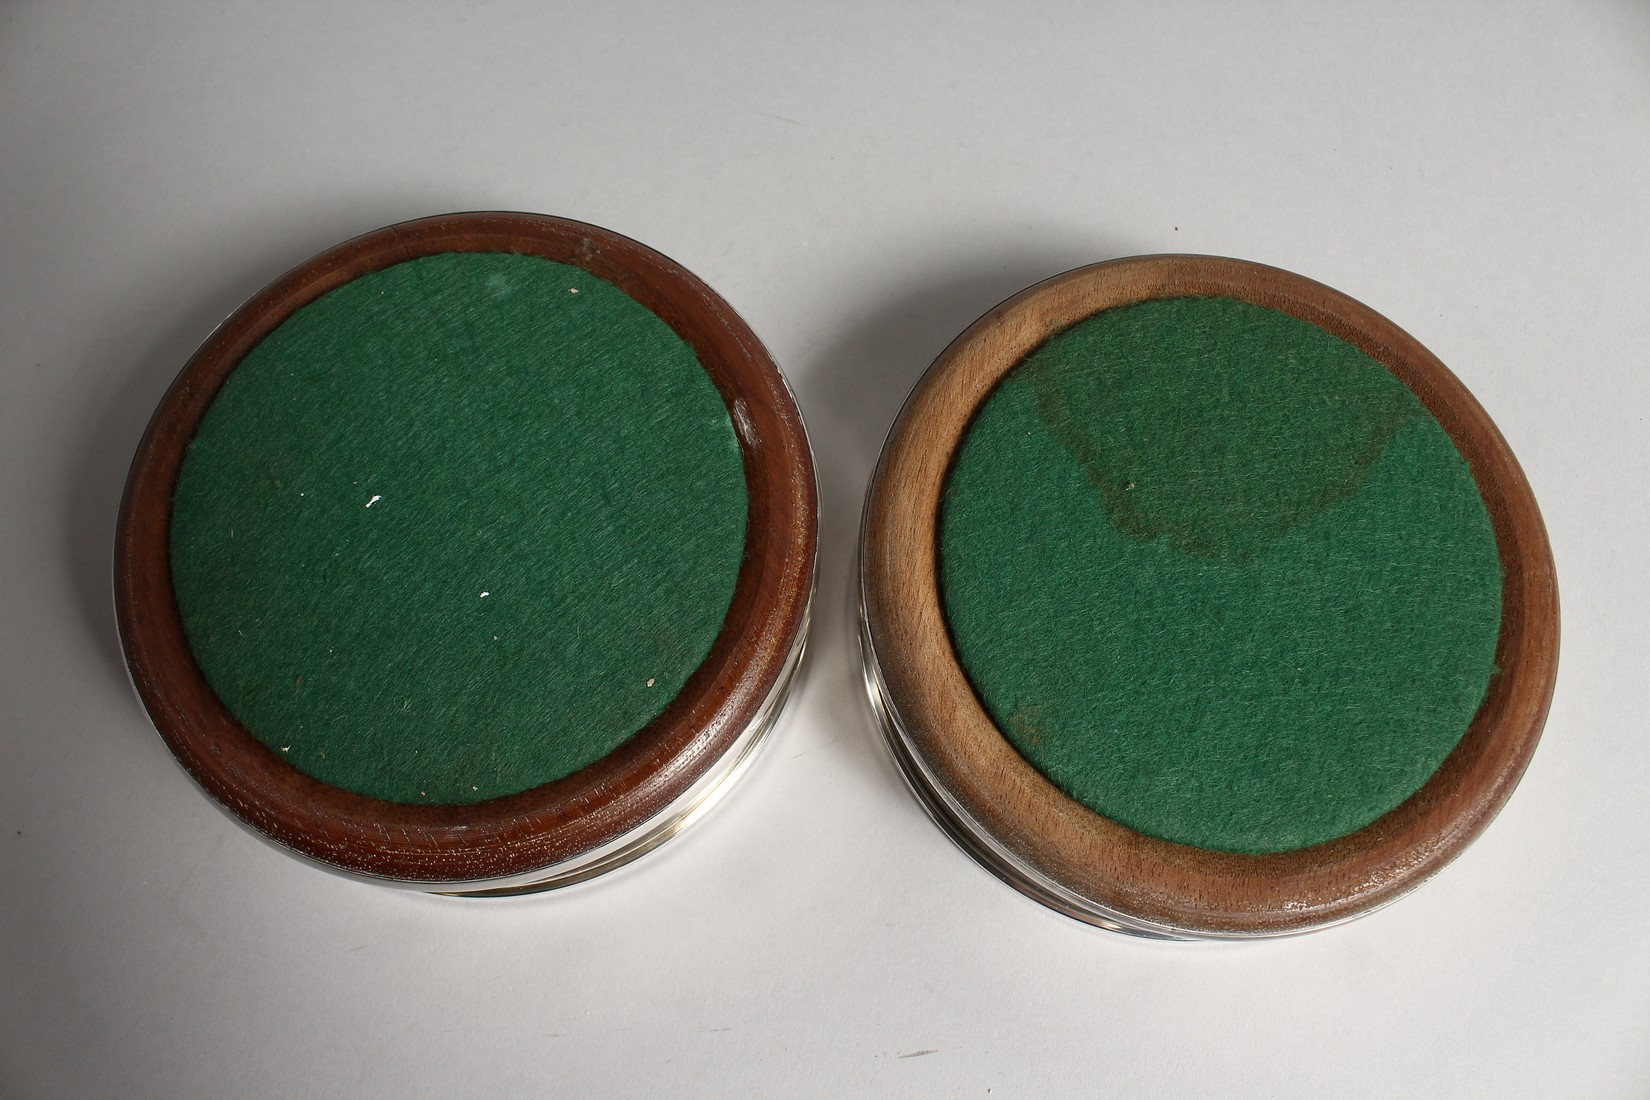 A PAIR OF MODERN PLAIN SILVER WINE WINE COASTERS wit turned wood bases 4.75diameter London 2003 - Image 6 of 6